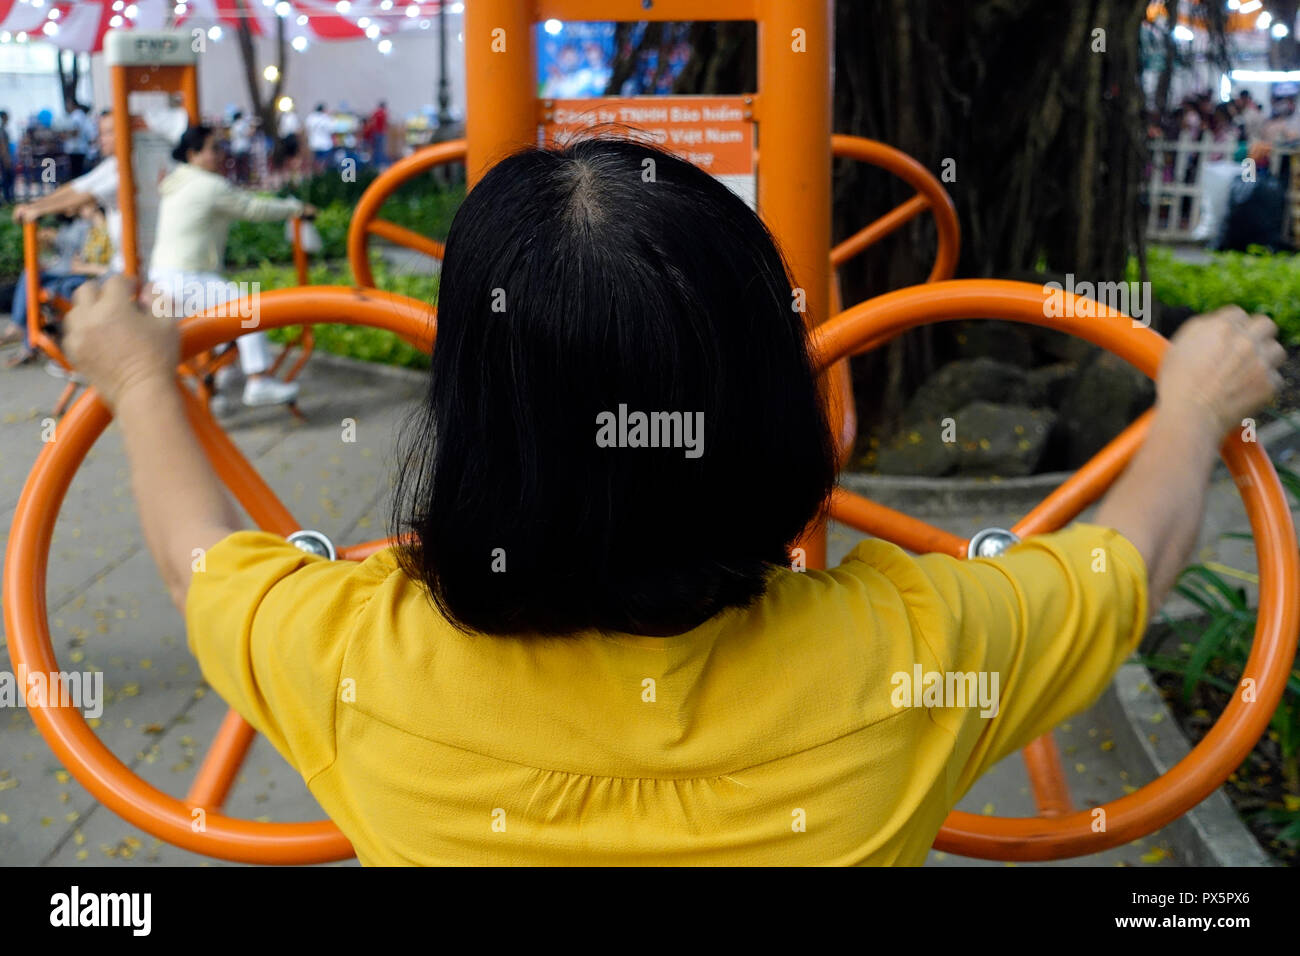 A middle-aged woman using  exercise equipment in a park.  Ho Chi Minh City. Vietnam. - Stock Image